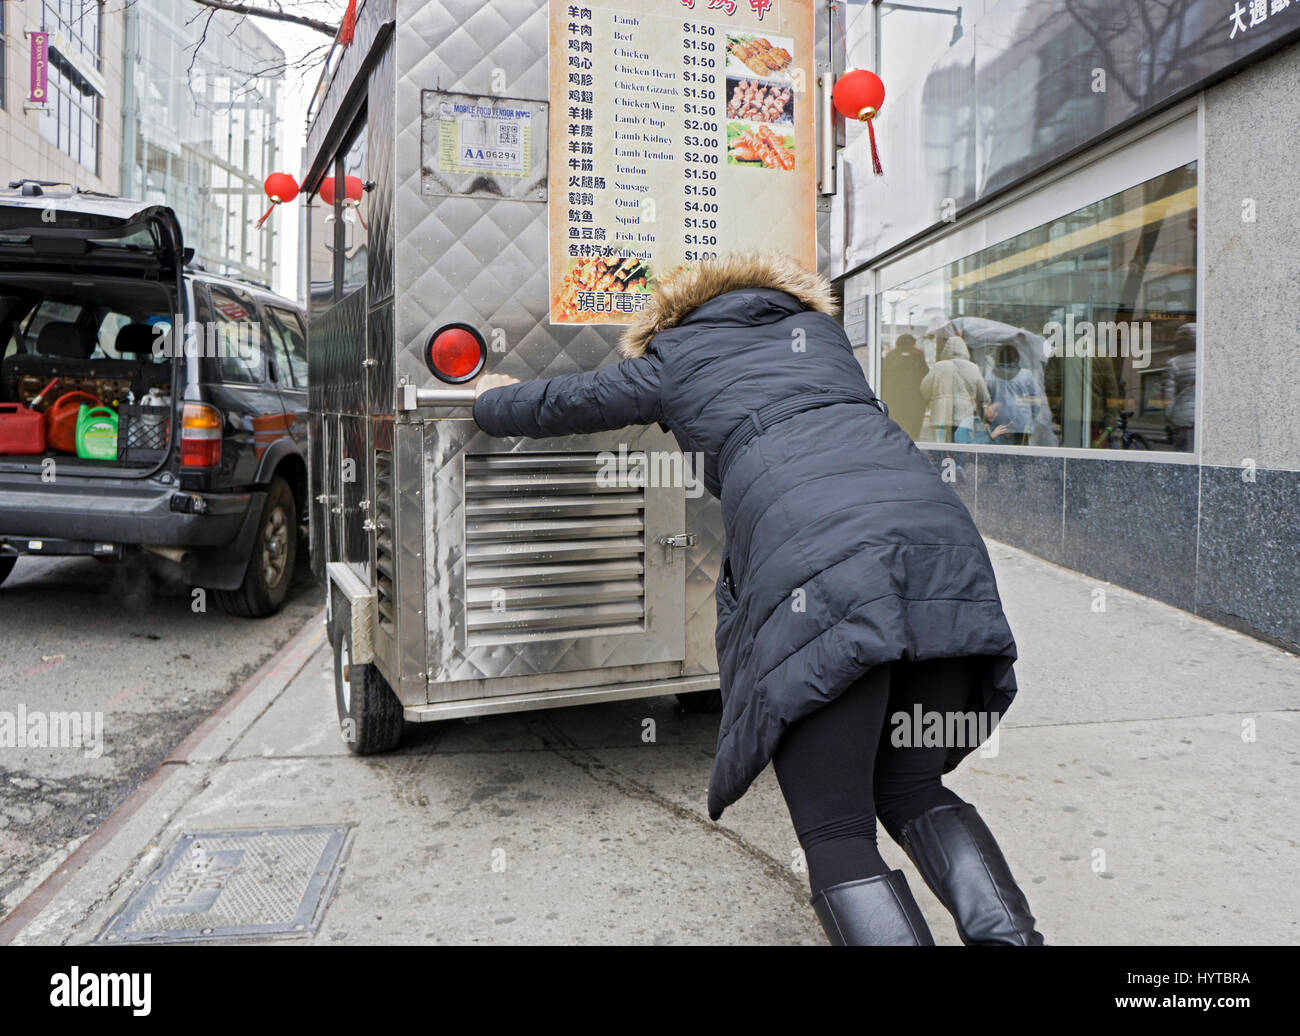 A Chinese American woman pushing a food cart into place on a street in Chinatown, Flushing, Queens, New York City - Stock Image